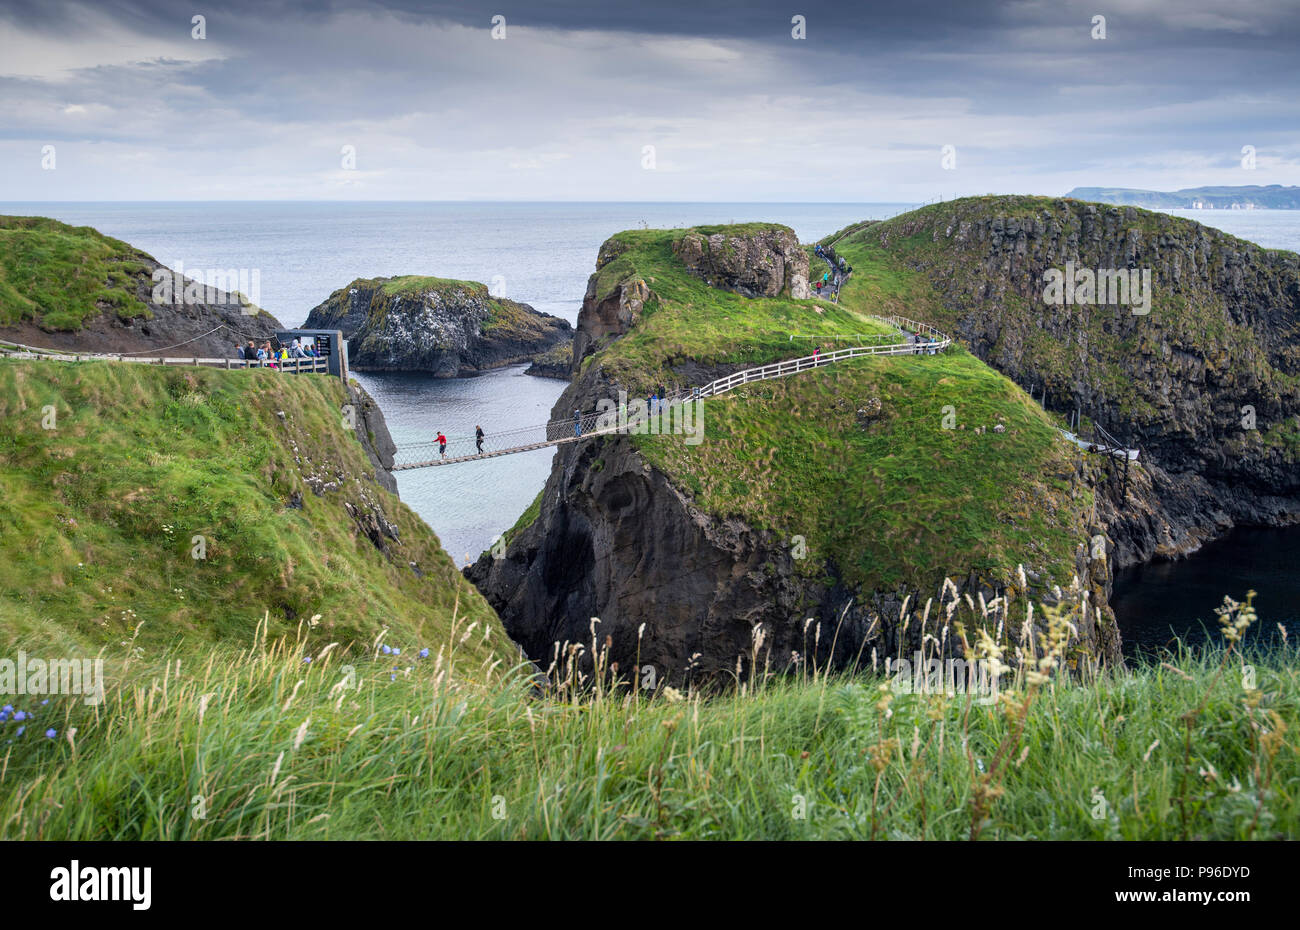 Tourists walking on the Carrick-a-Rede rope bridge on the Causeway Coast in County Antrim, Northern Ireland - Stock Image